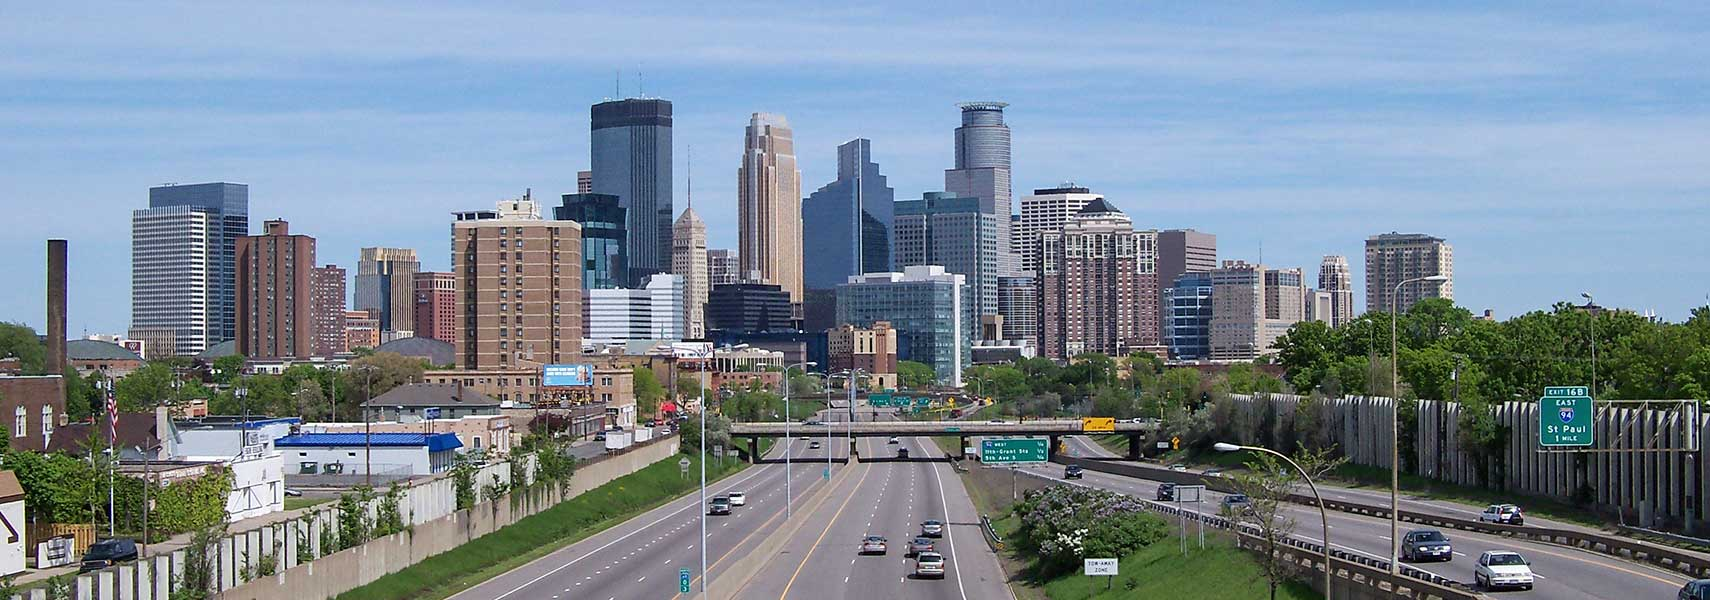 Google Map of the City of Minneapolis, Minnesota, USA - Nations ...